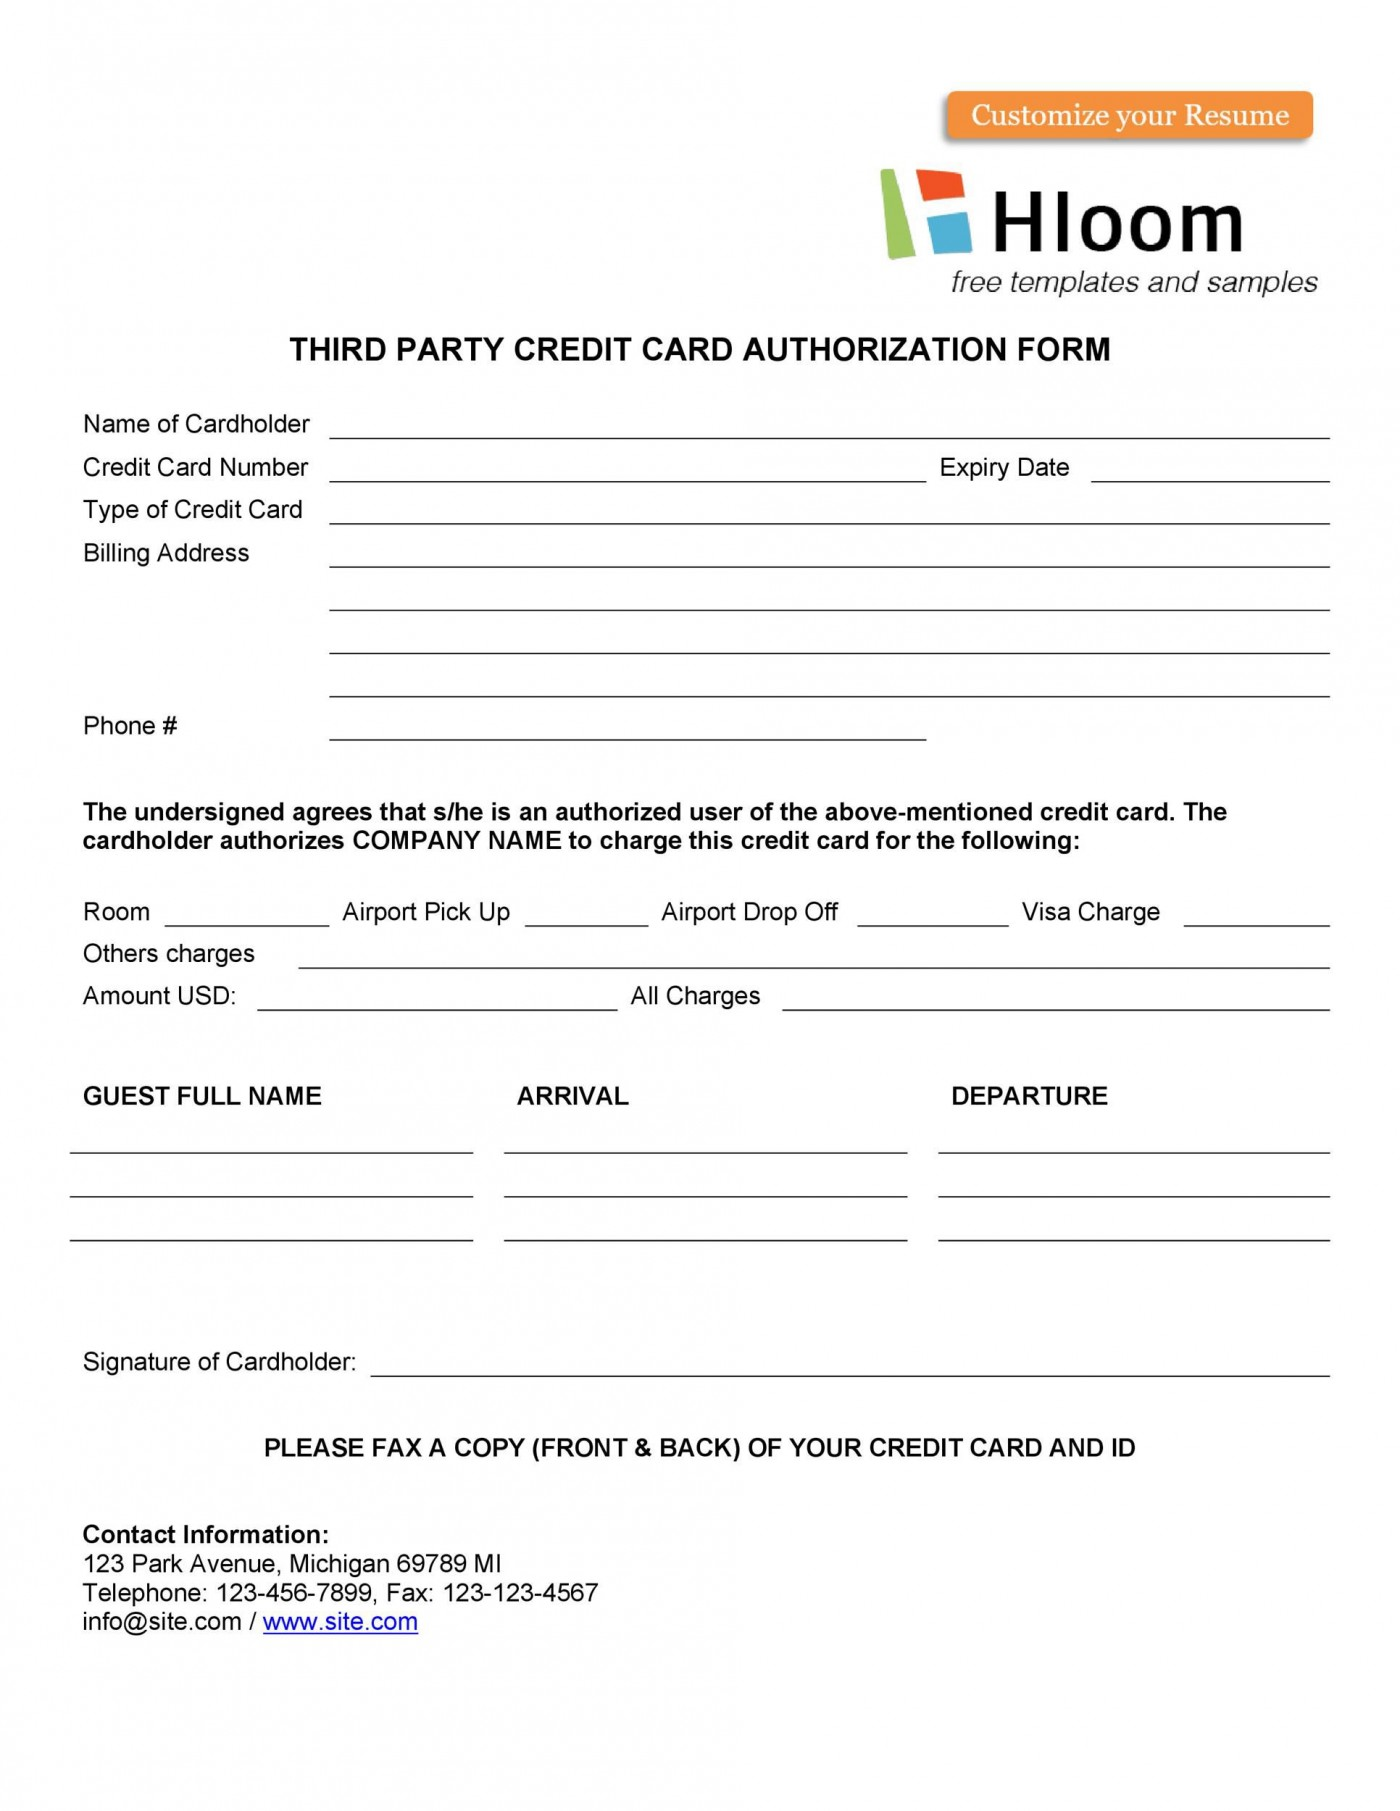 007 Unbelievable Credit Card Usage Request Form Template Sample 1400